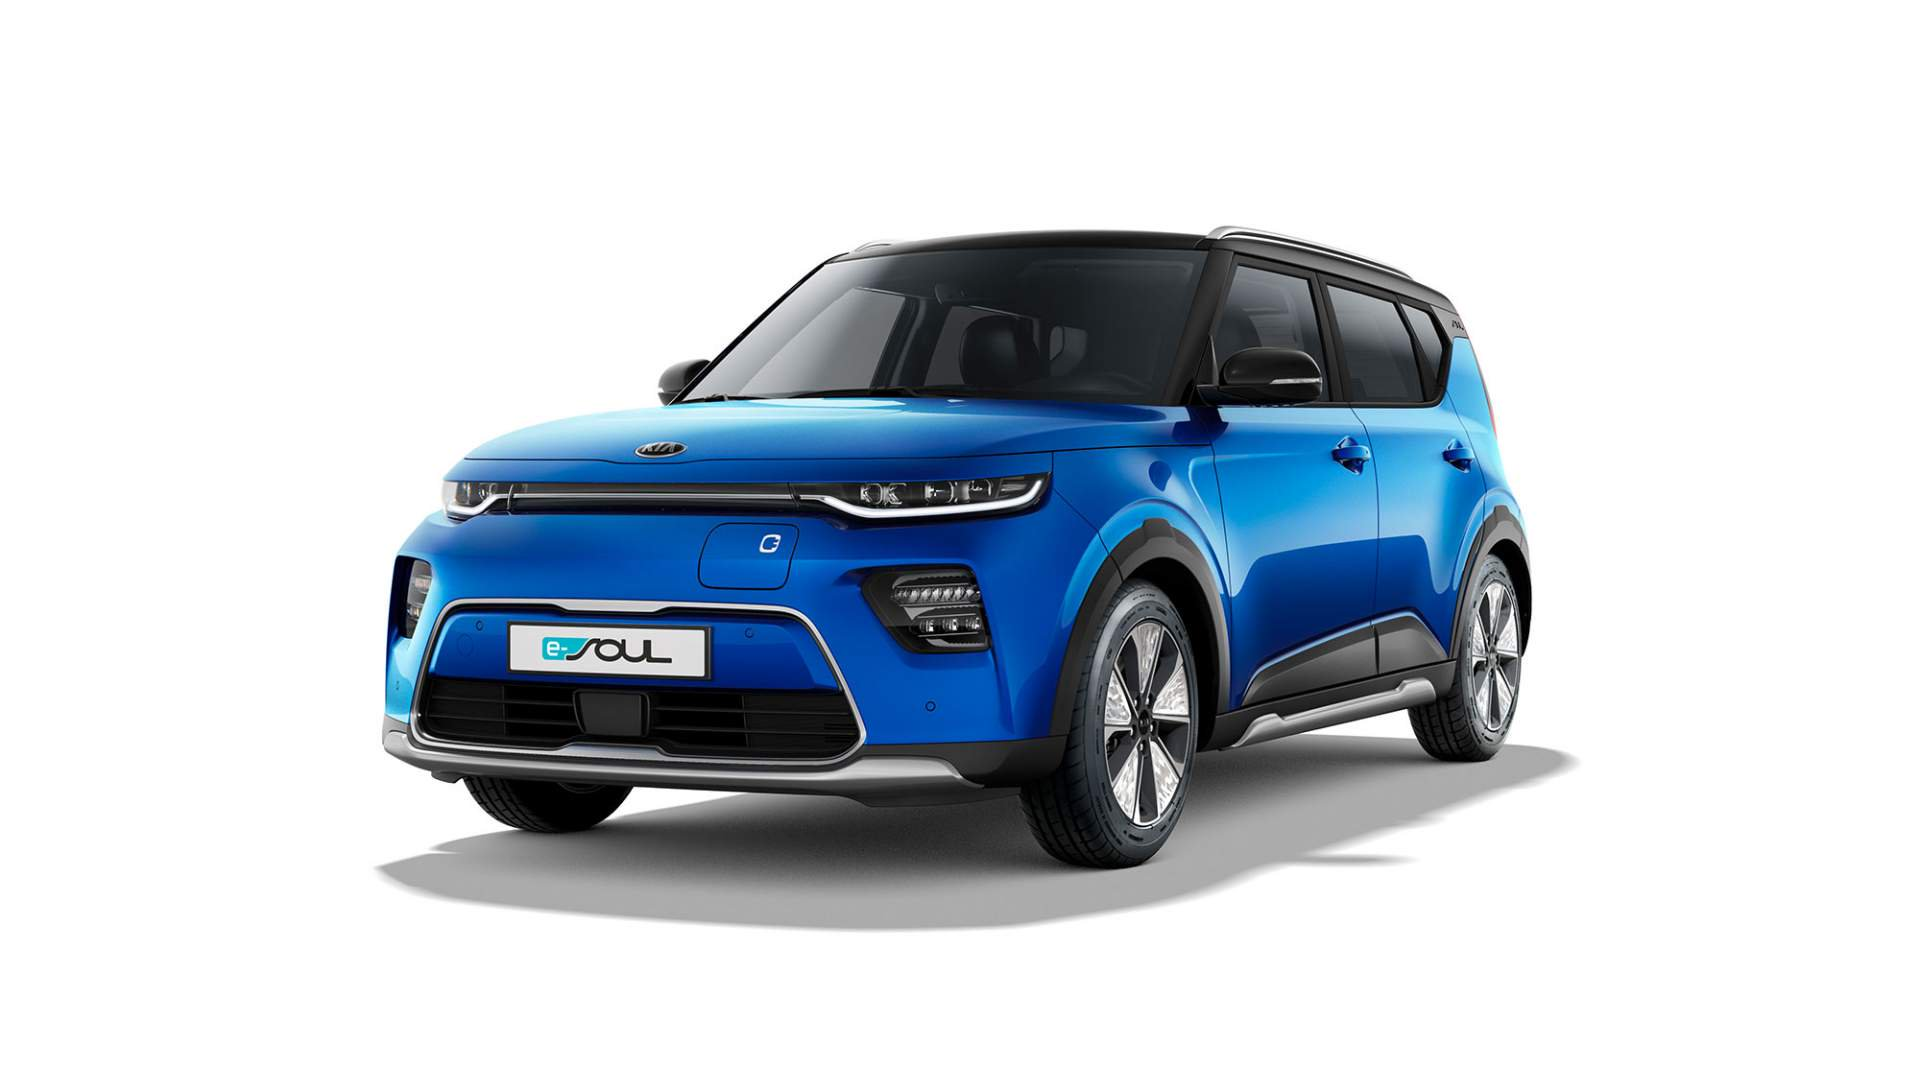 electric-kia-soul-gets-standard-and-long-range-versions-in-europe-132658_1